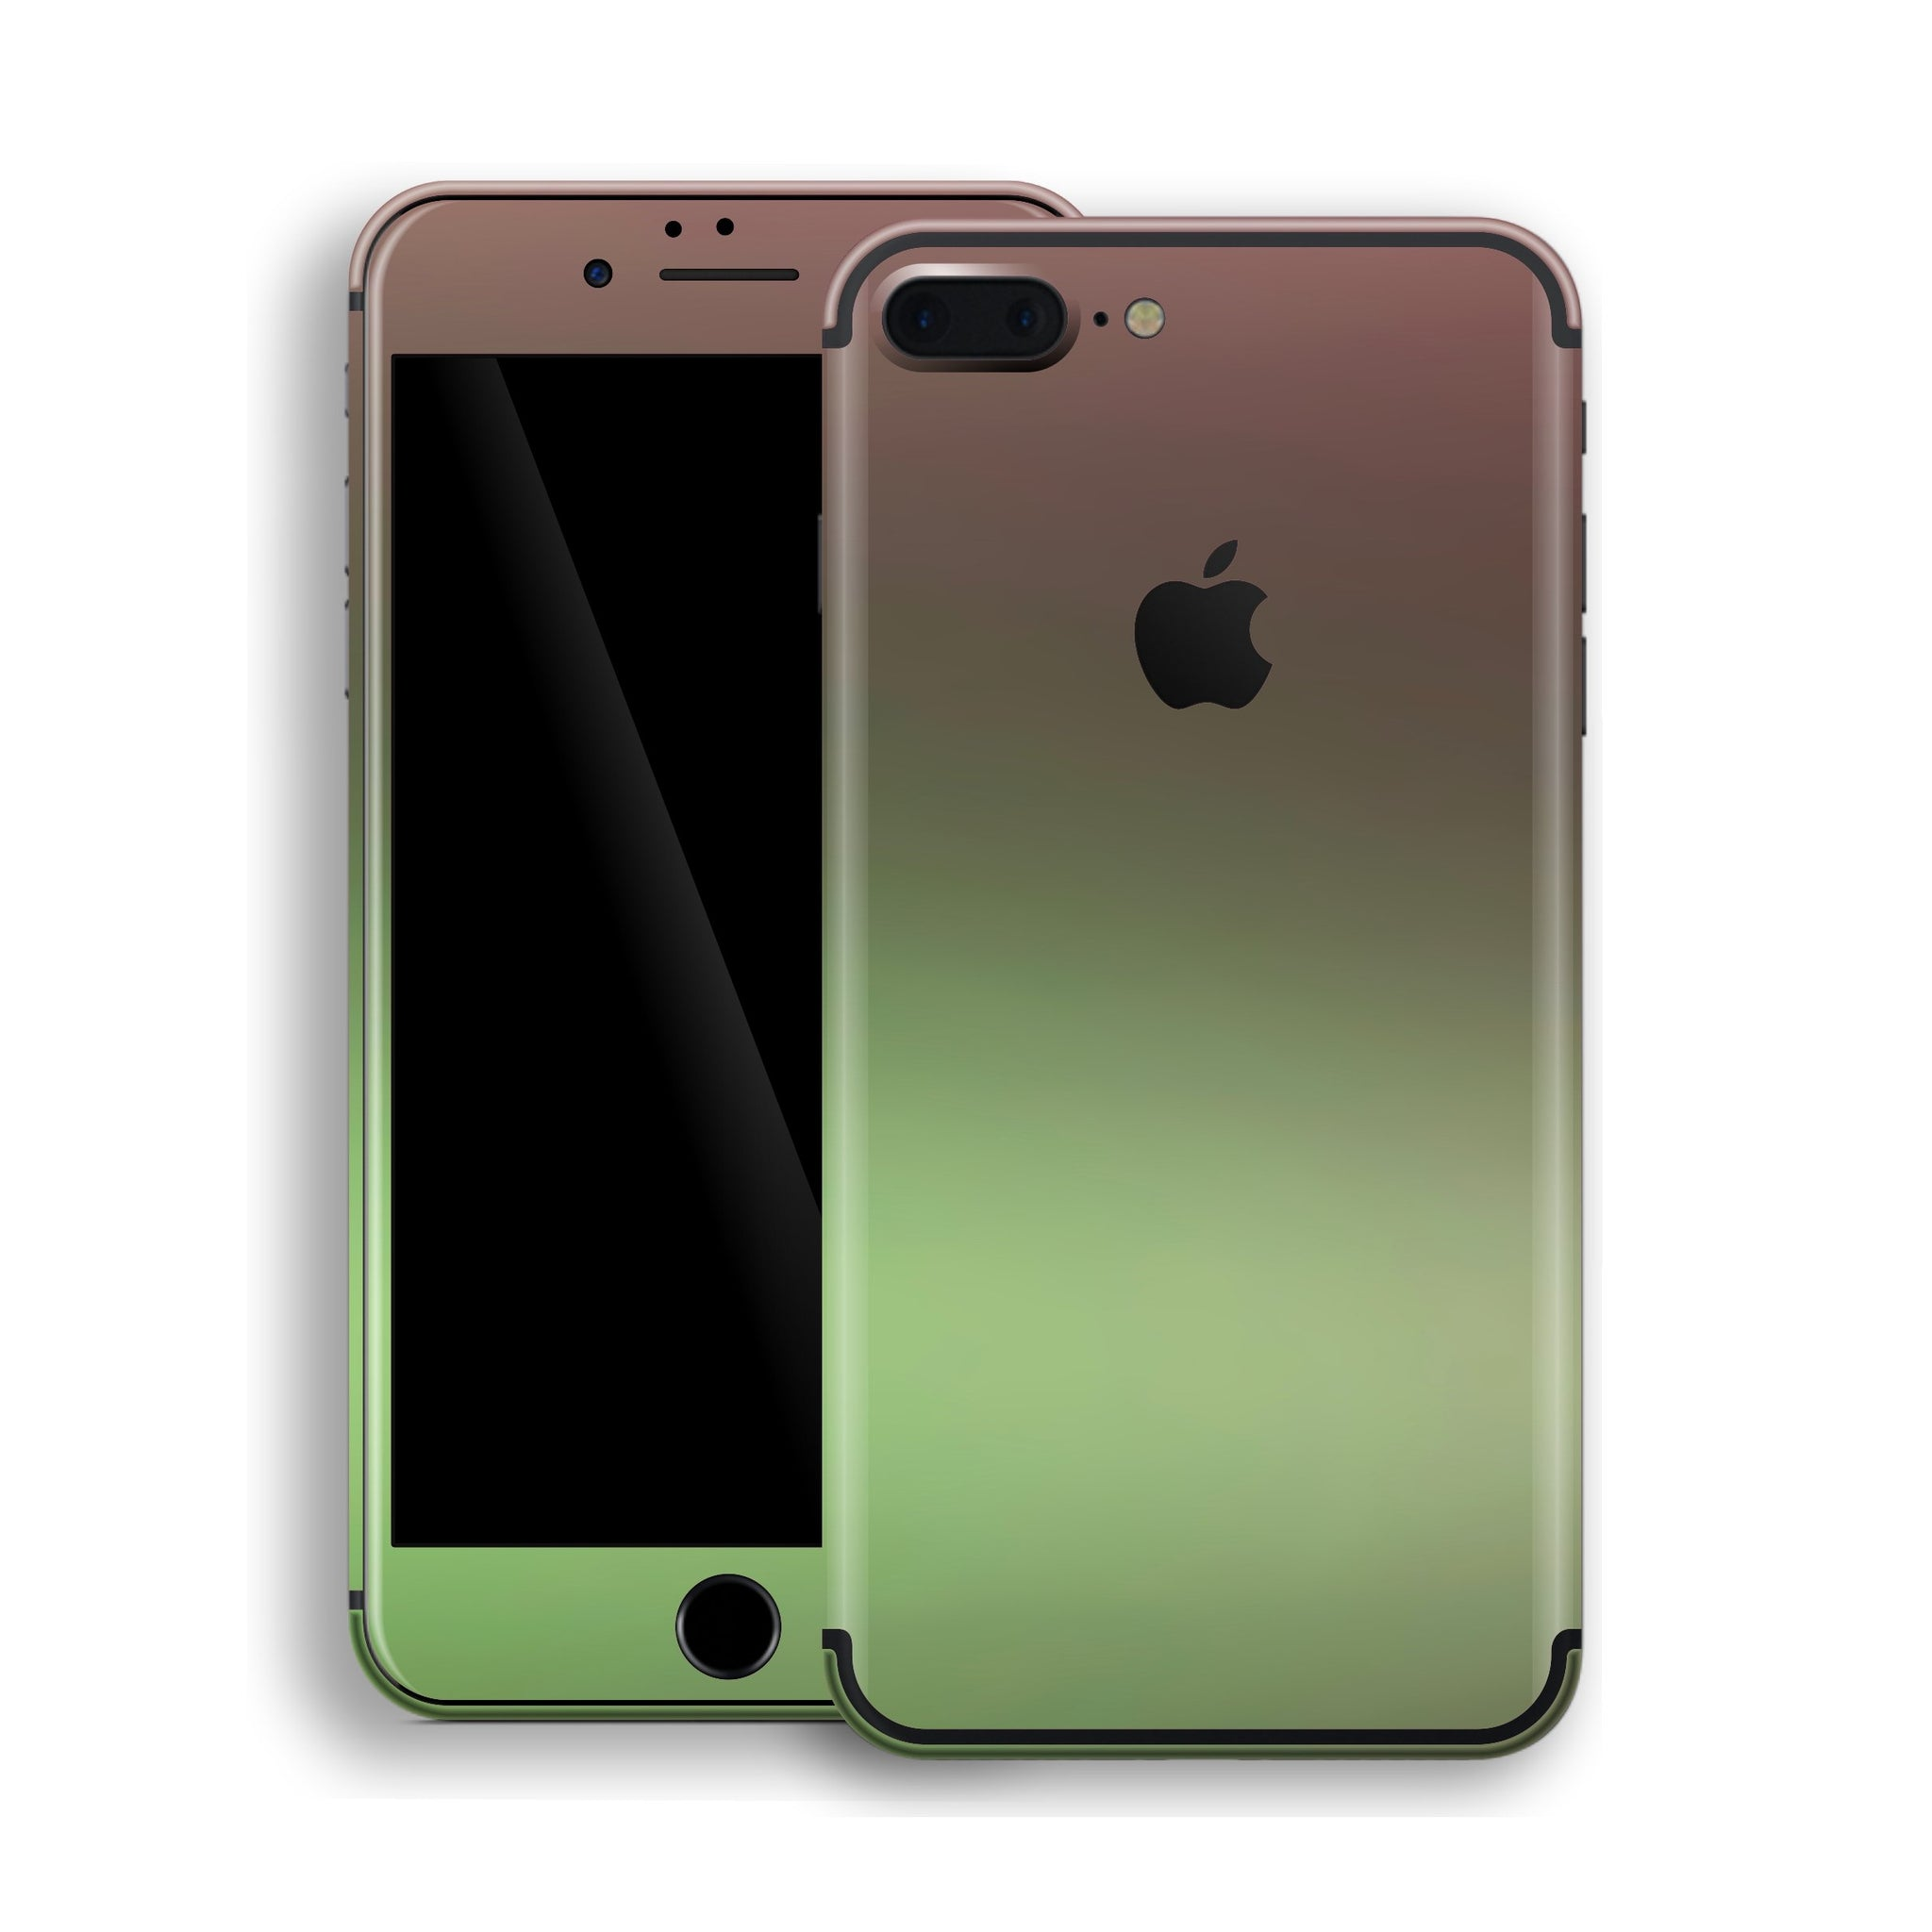 iPhone 7 Plus Chameleon Avocado Colour-Changing Skin, Decal, Wrap, Protector, Cover by EasySkinz | EasySkinz.com